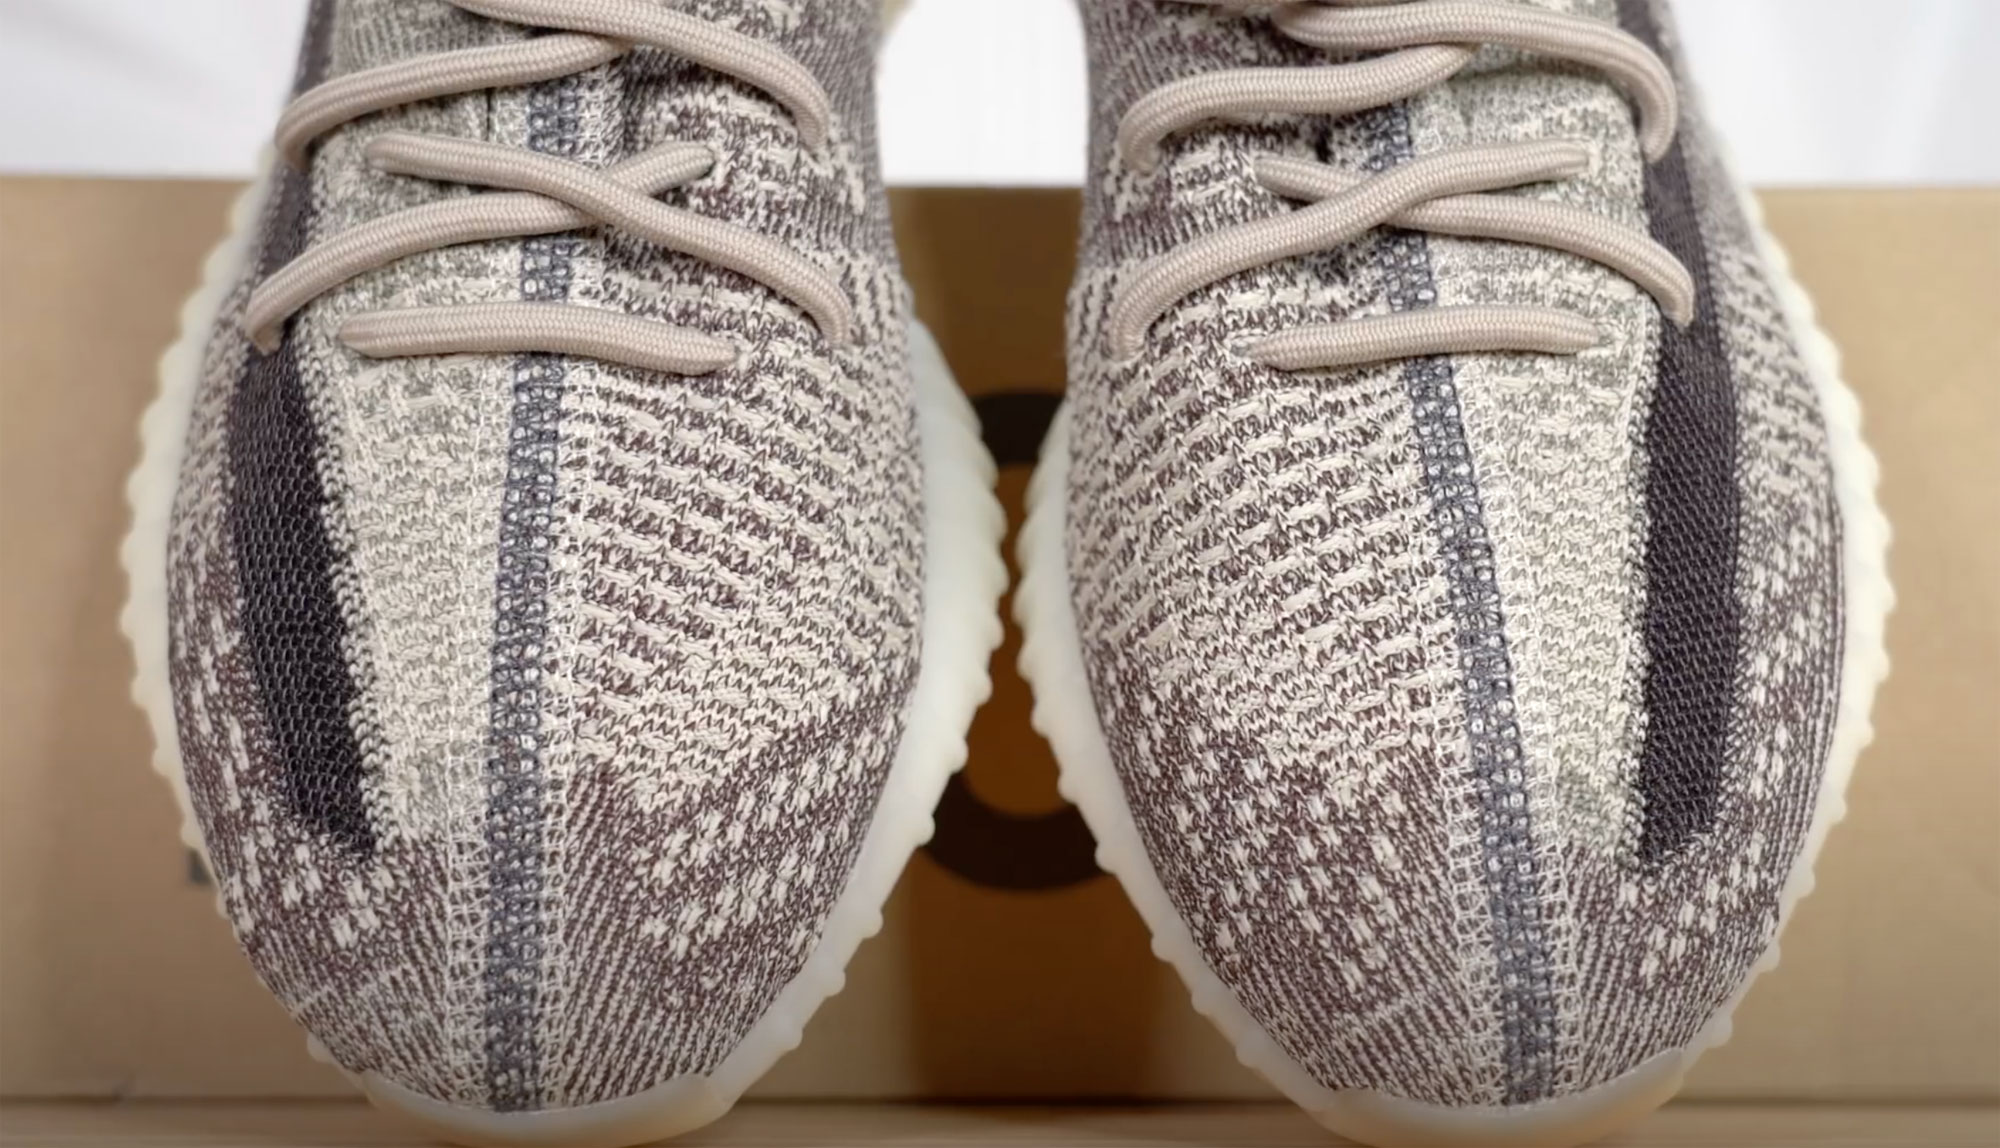 yeezy-boost-350-v2-zyon-on-feet